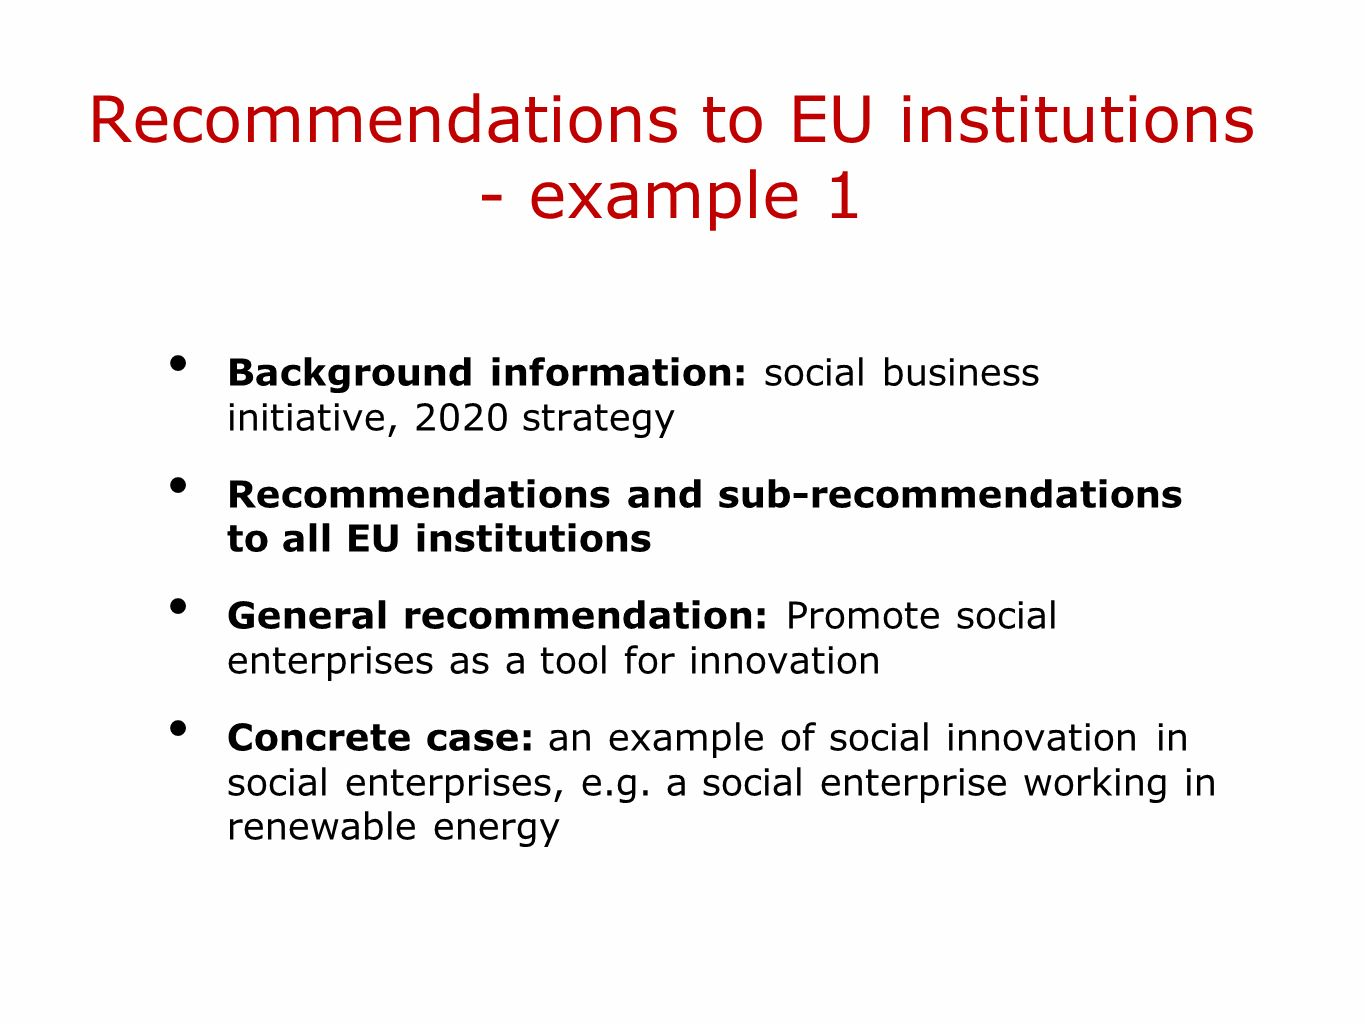 Recommendations to EU institutions - example 1 Background information: social business initiative, 2020 strategy Recommendations and sub-recommendatio